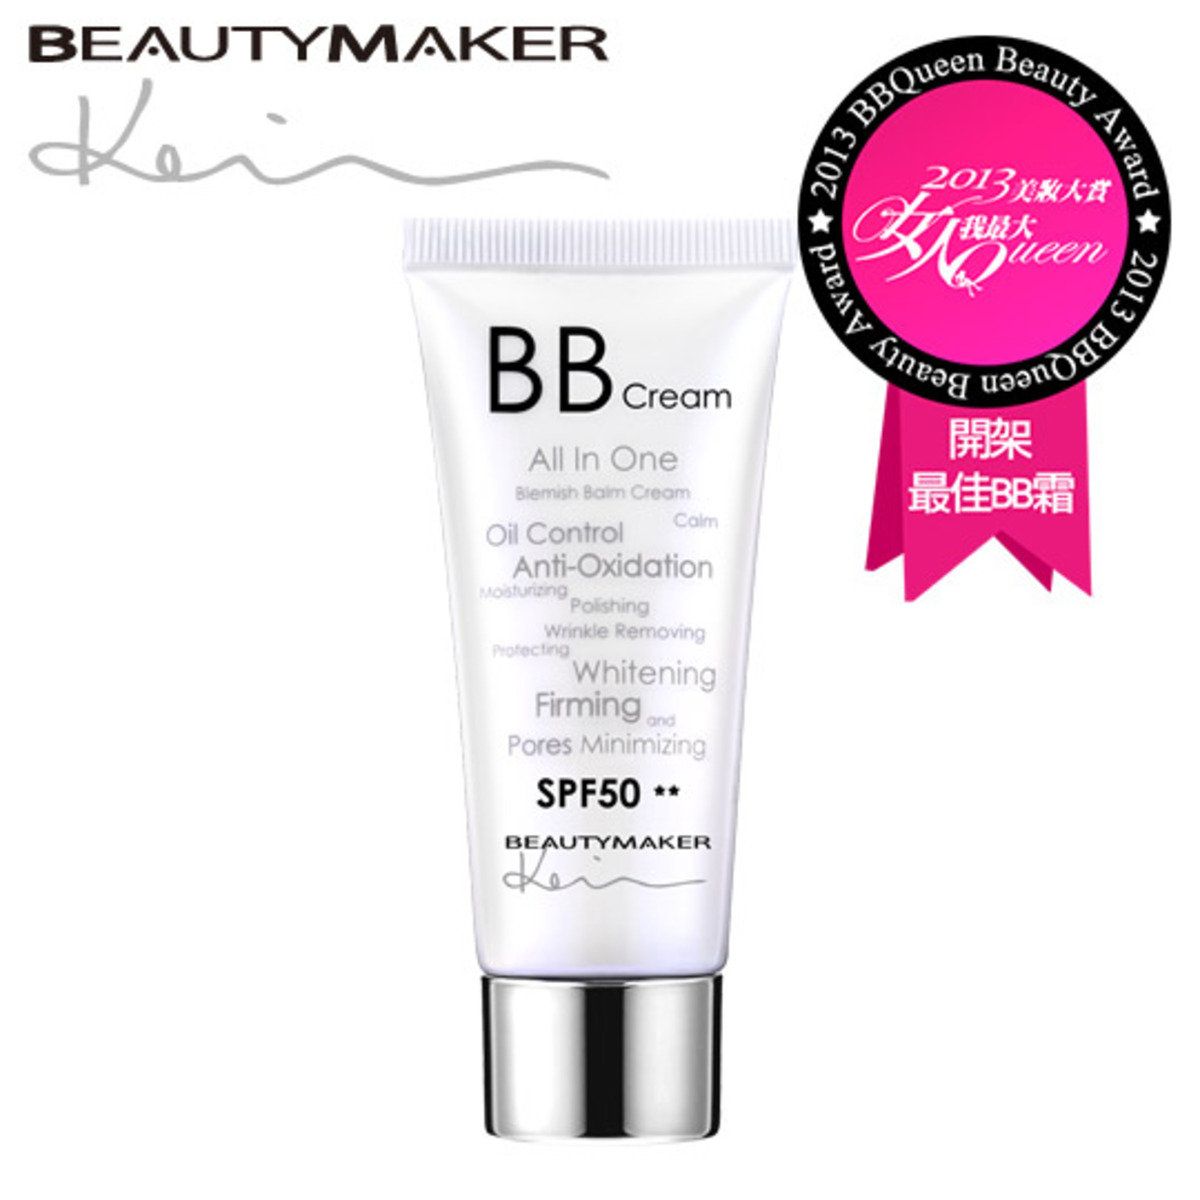 (方便易用)BB Cream All In One Blemish Balm Cream SPF50**